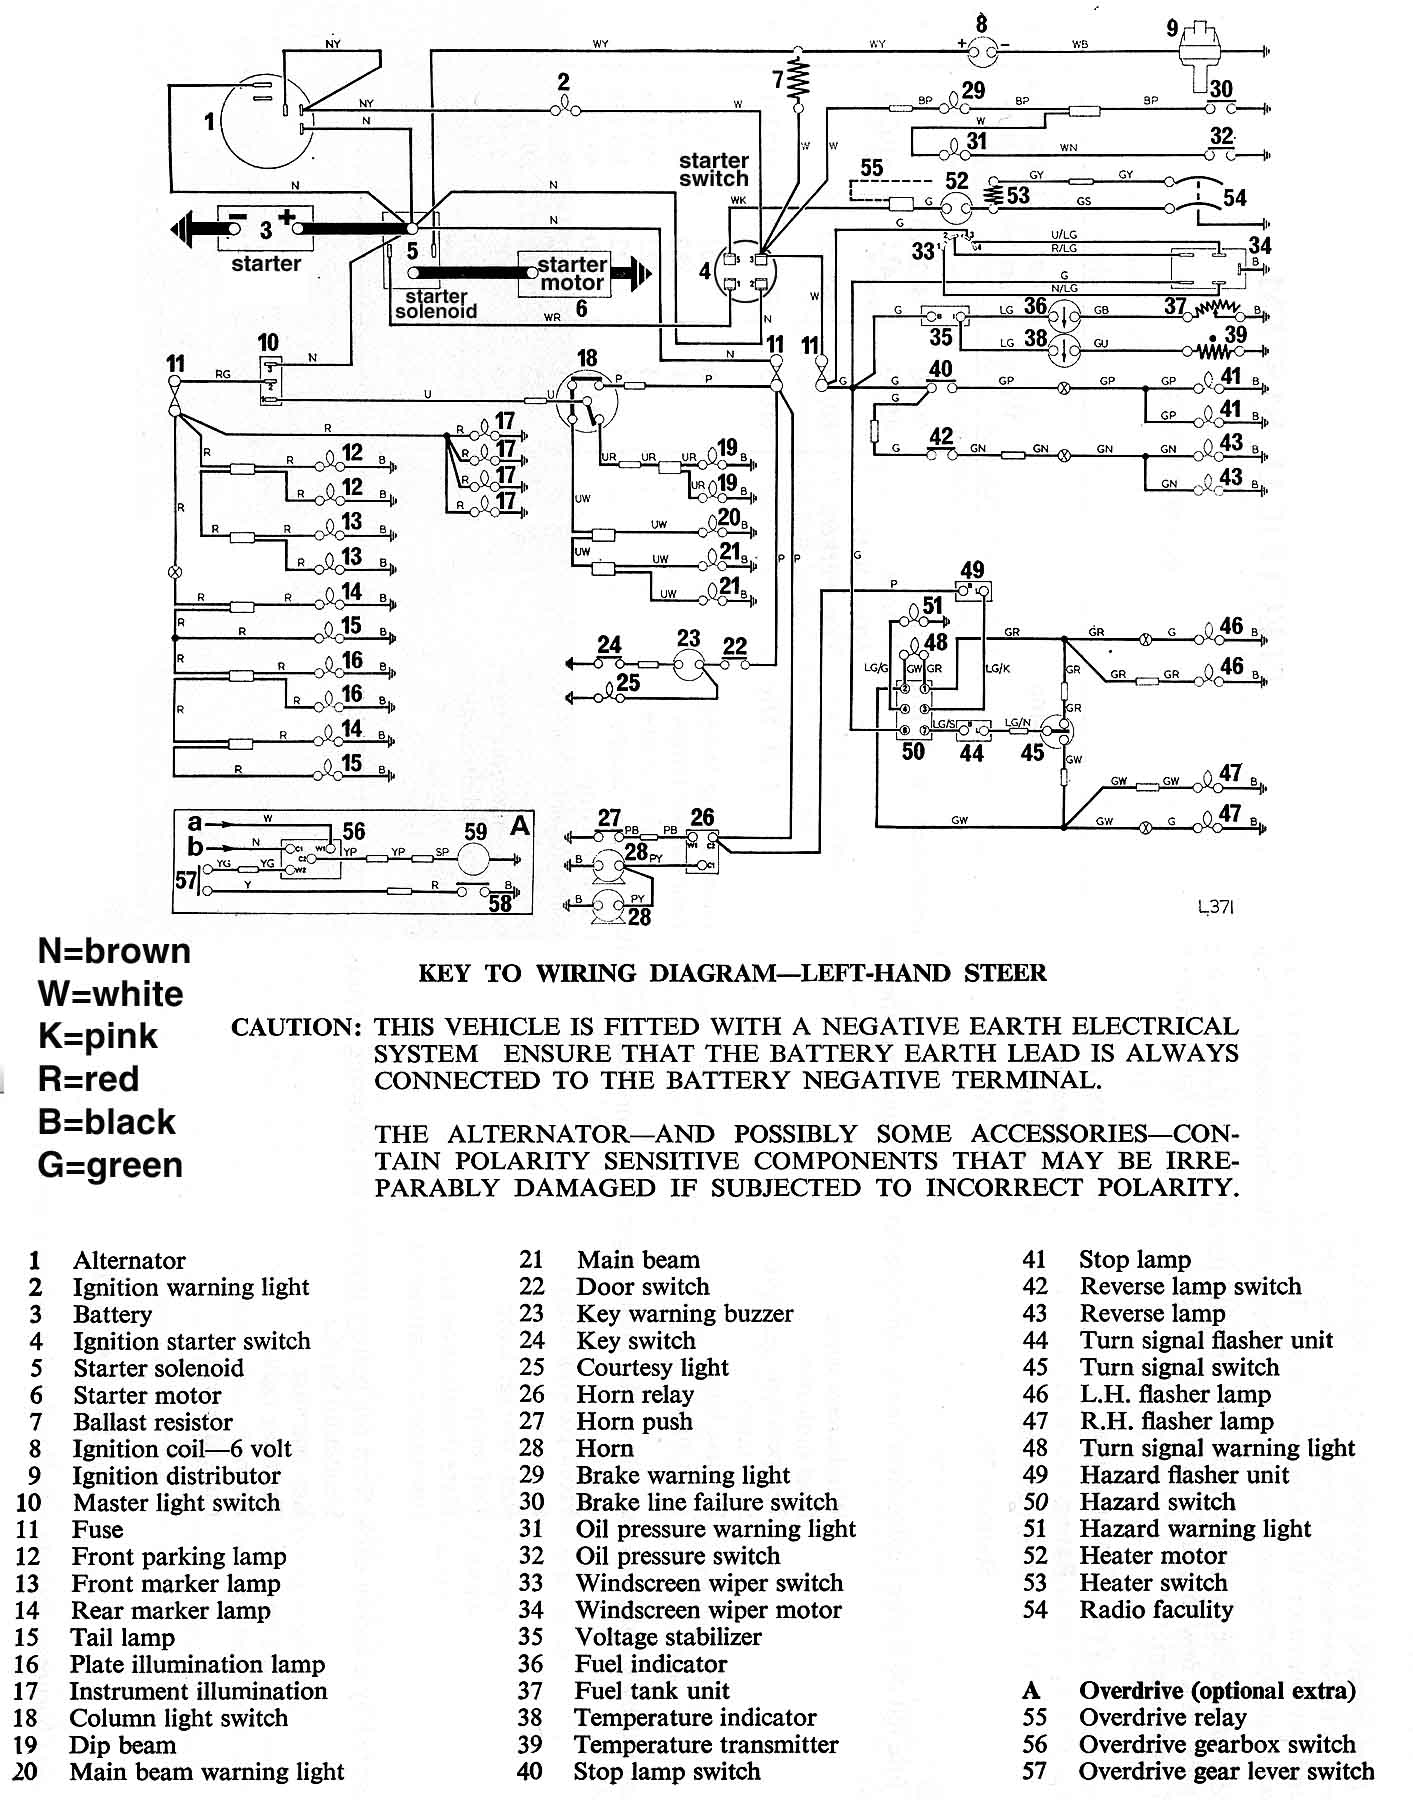 1968 Bsa Wiring Diagram Just Data Hisun Schematics And Diagrams Triumph Spitfire Gt6 Herald Motorcycle Dual Coil